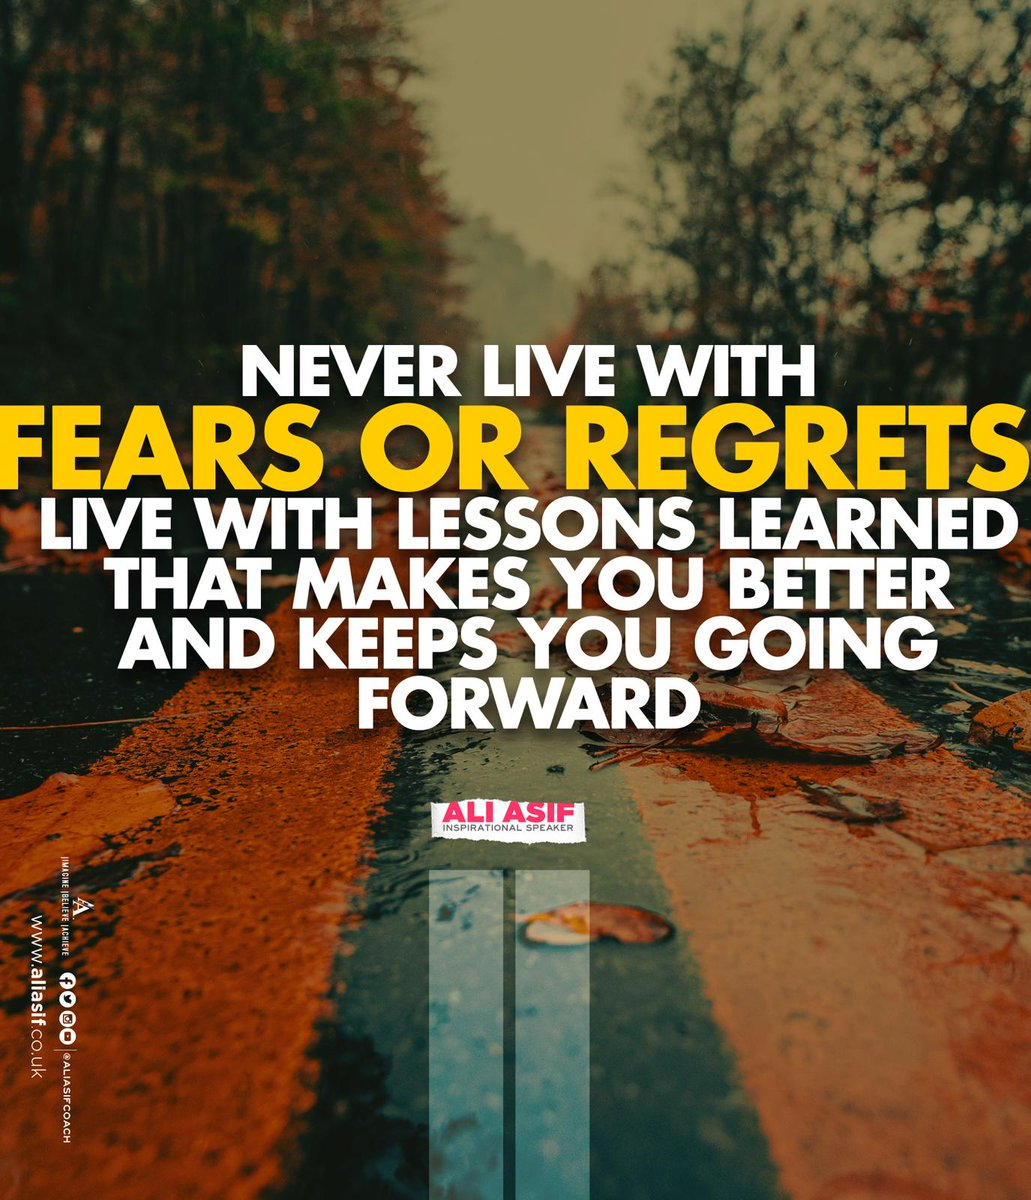 Never live with fears or regrets live with lessons learned that makes you better and keeps you going forward. #FridayThoughts #FridayMotivation #FridayFeeling #ThinkBIGSundayWithMarshapic.twitter.com/XbeSRvx4lo